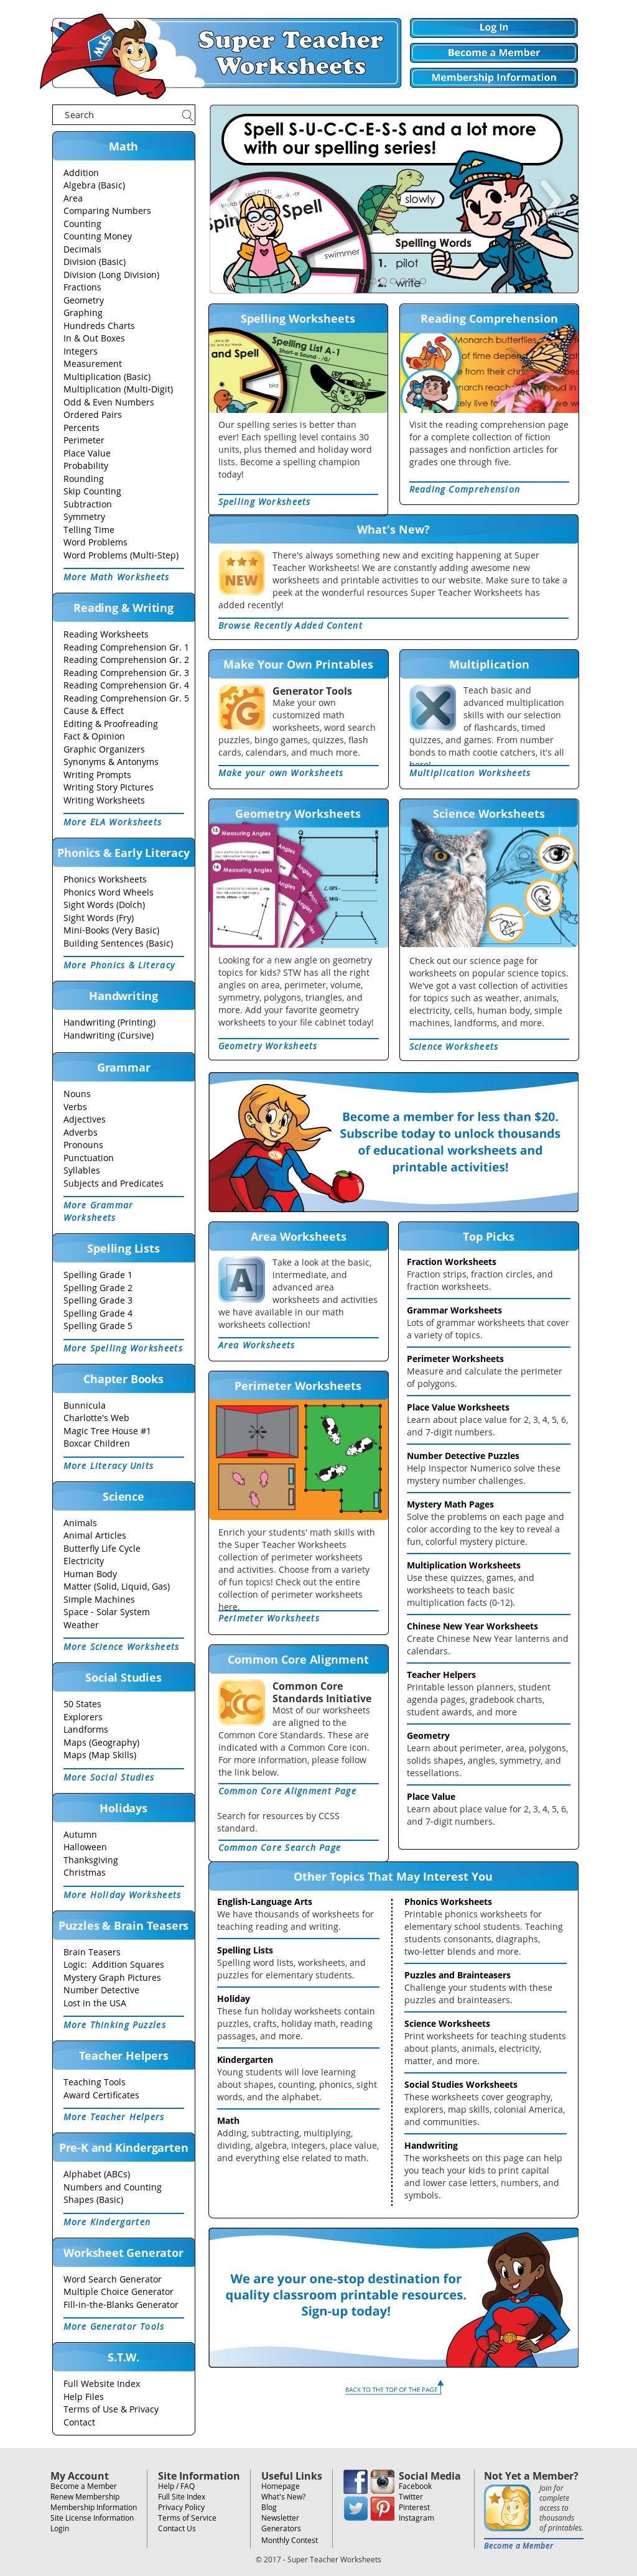 Super Teacher Worksheets Competitors Revenue And Employees Owler